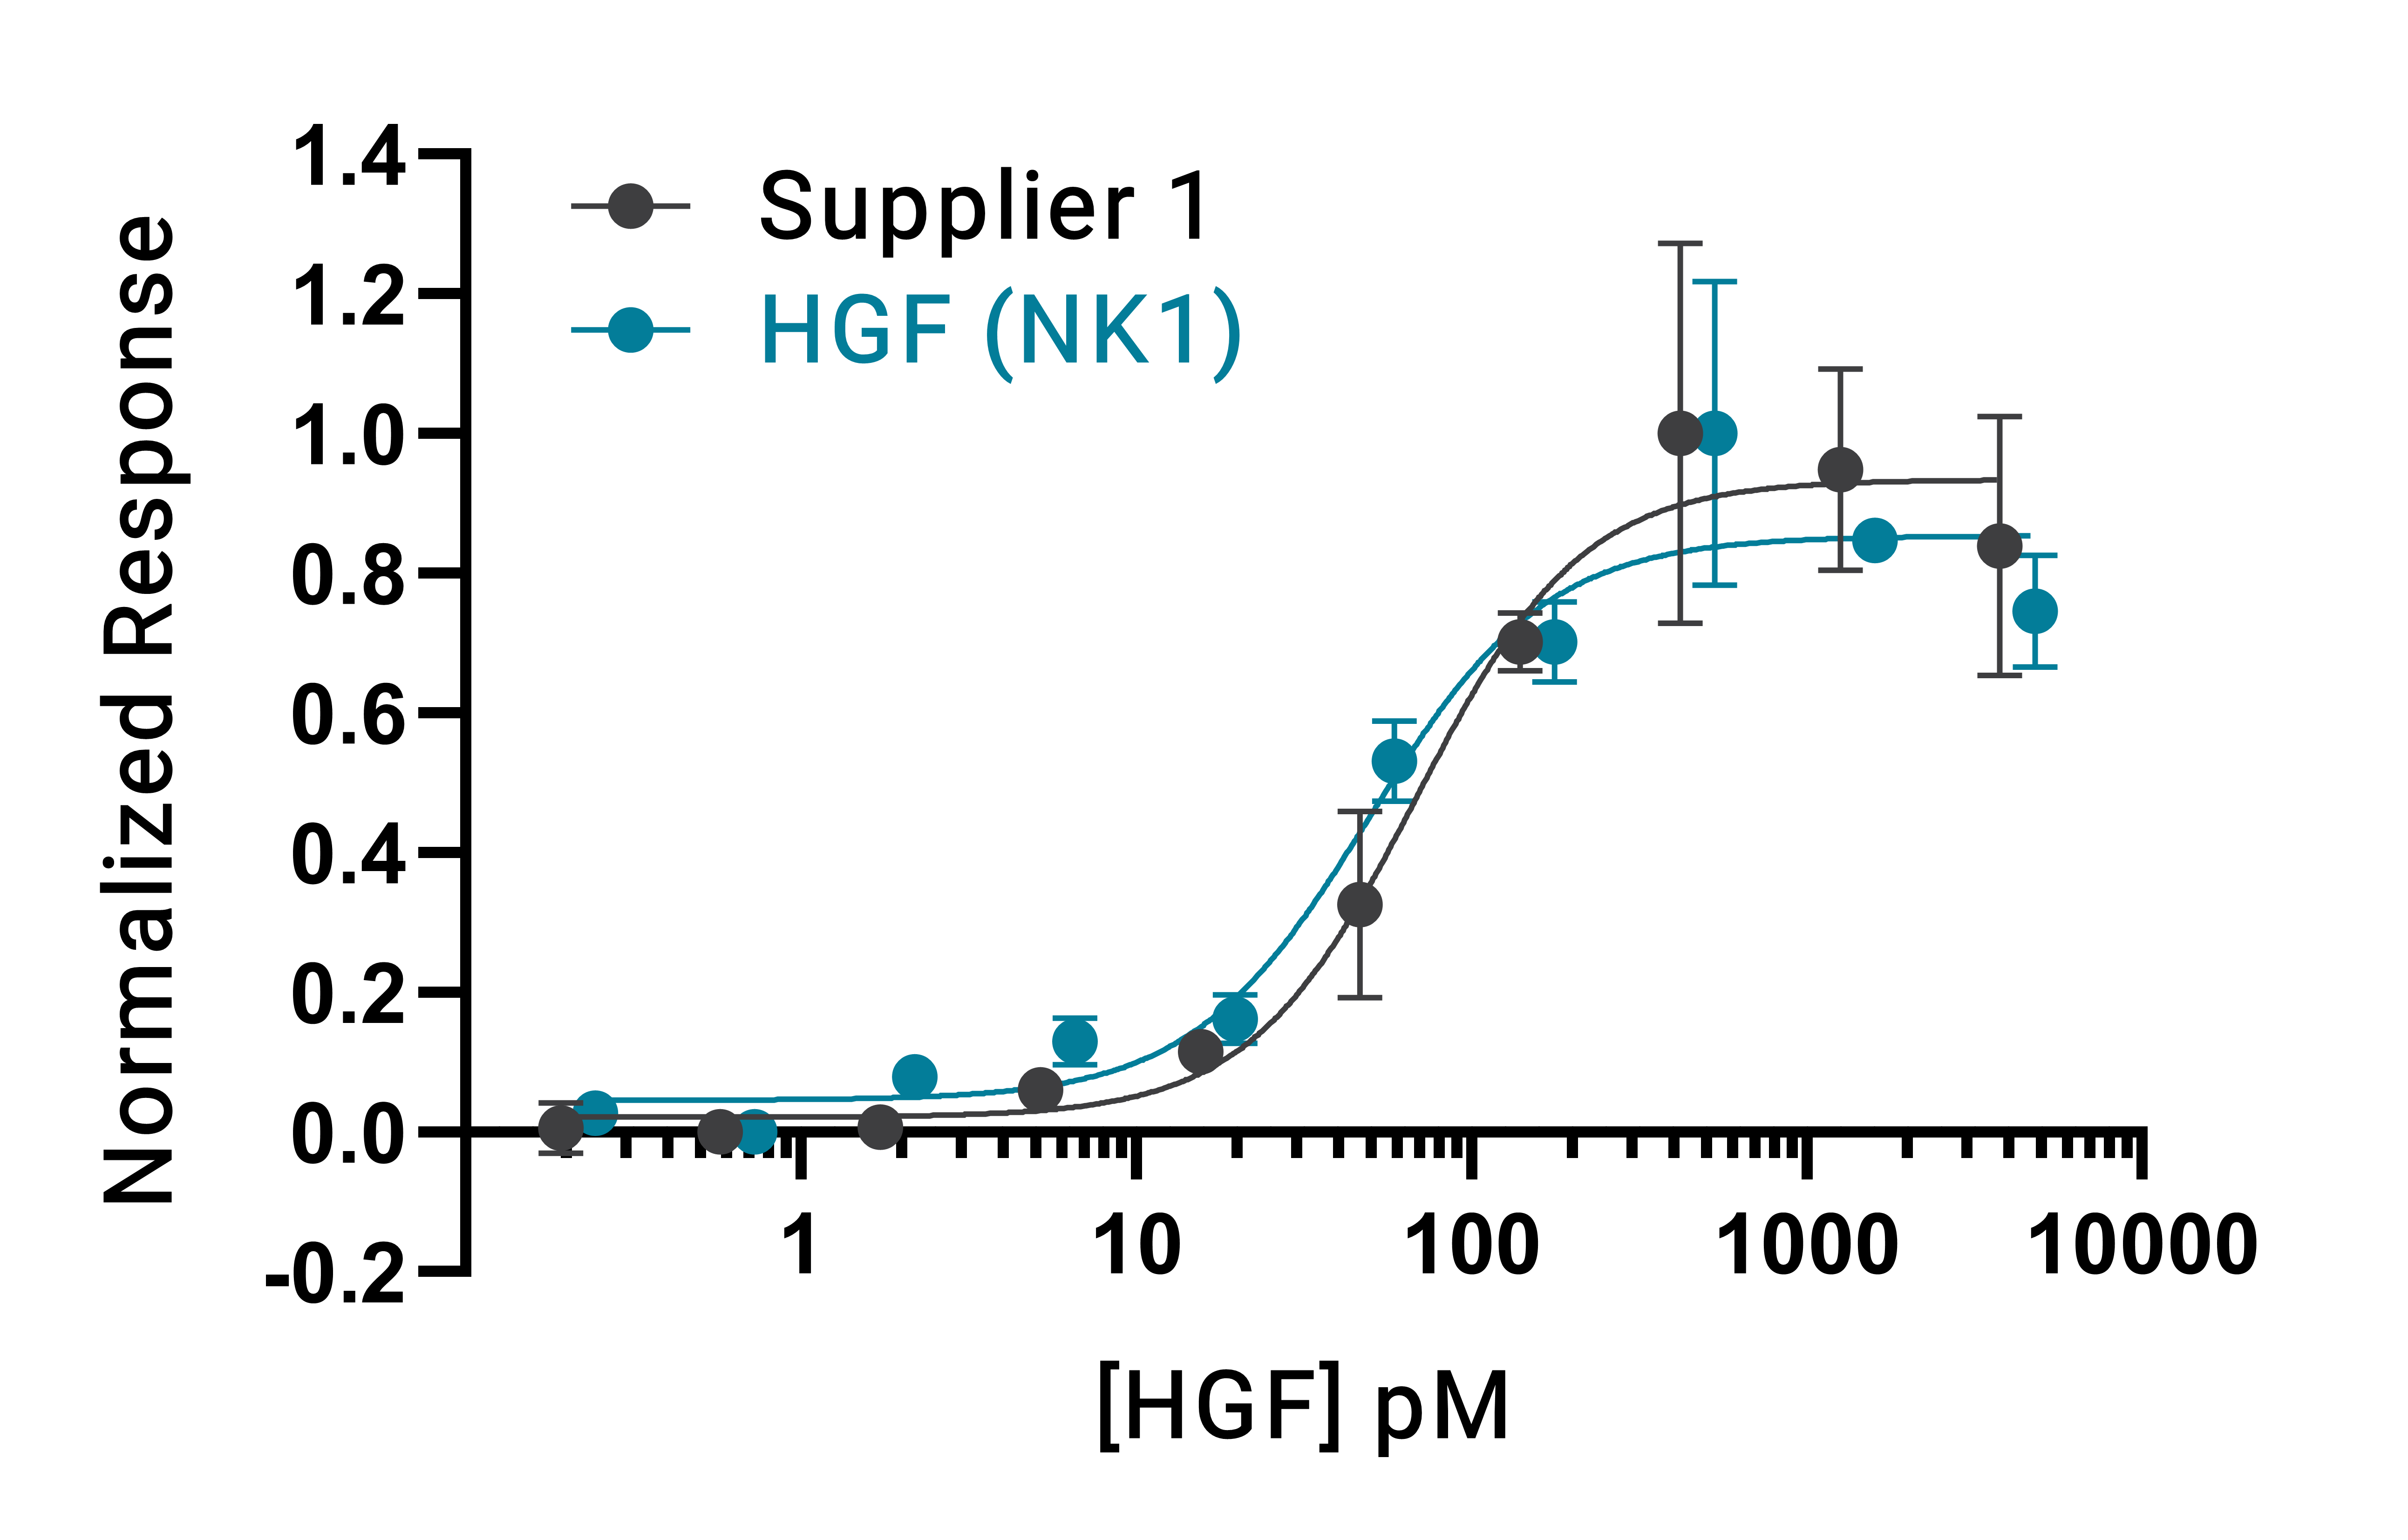 Recombinant human HGF (NK1) protein bioactivity vs. full length, mammalian cell-expressed HGF from another commercial supplier